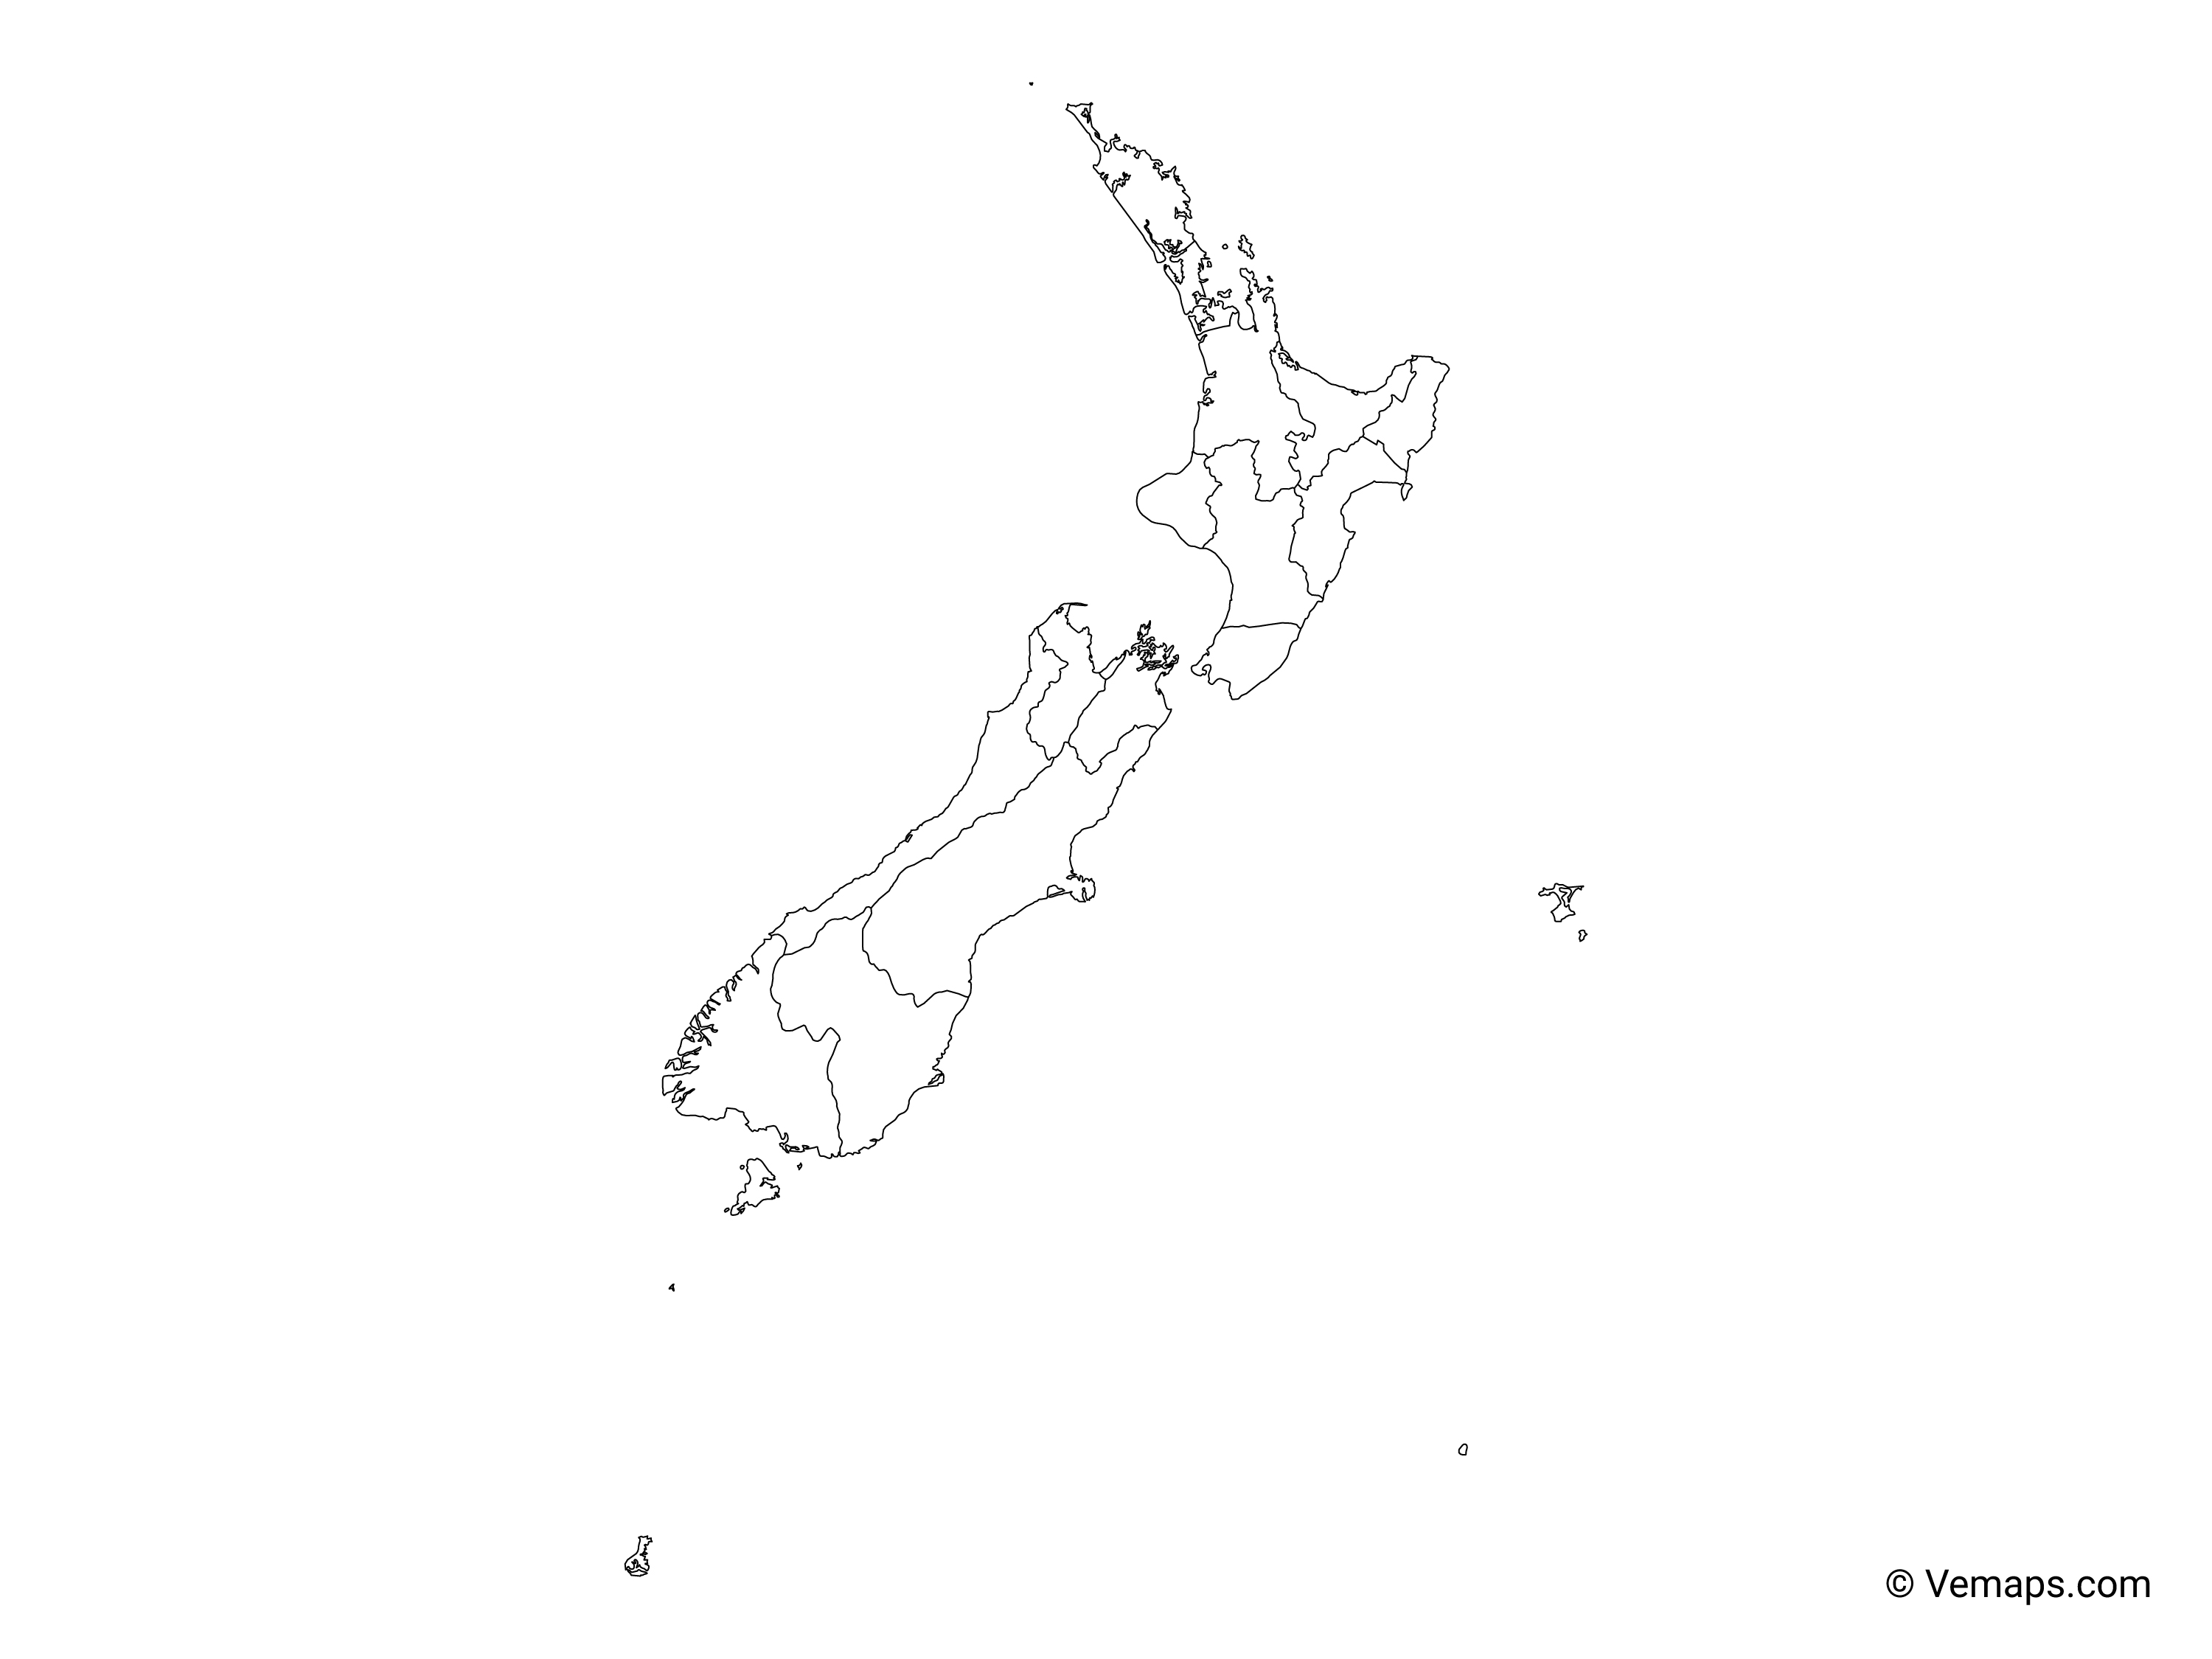 Map New Zealand Regions.Outline Map Of New Zealand With Regions Free Vector Maps